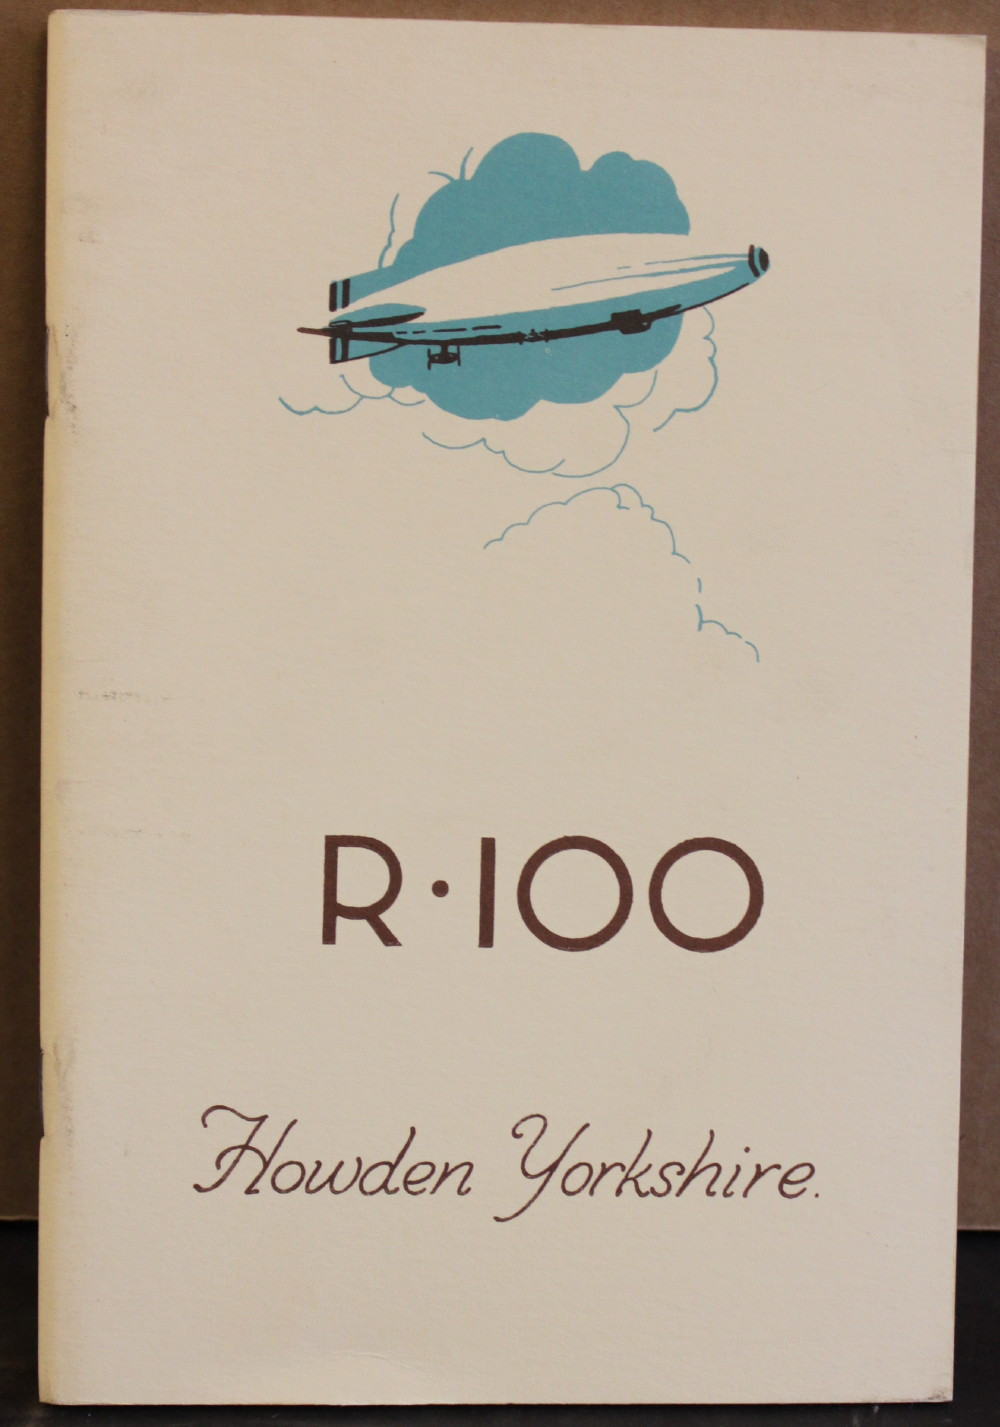 Image for Airship R100: Howden, Yorkshire.